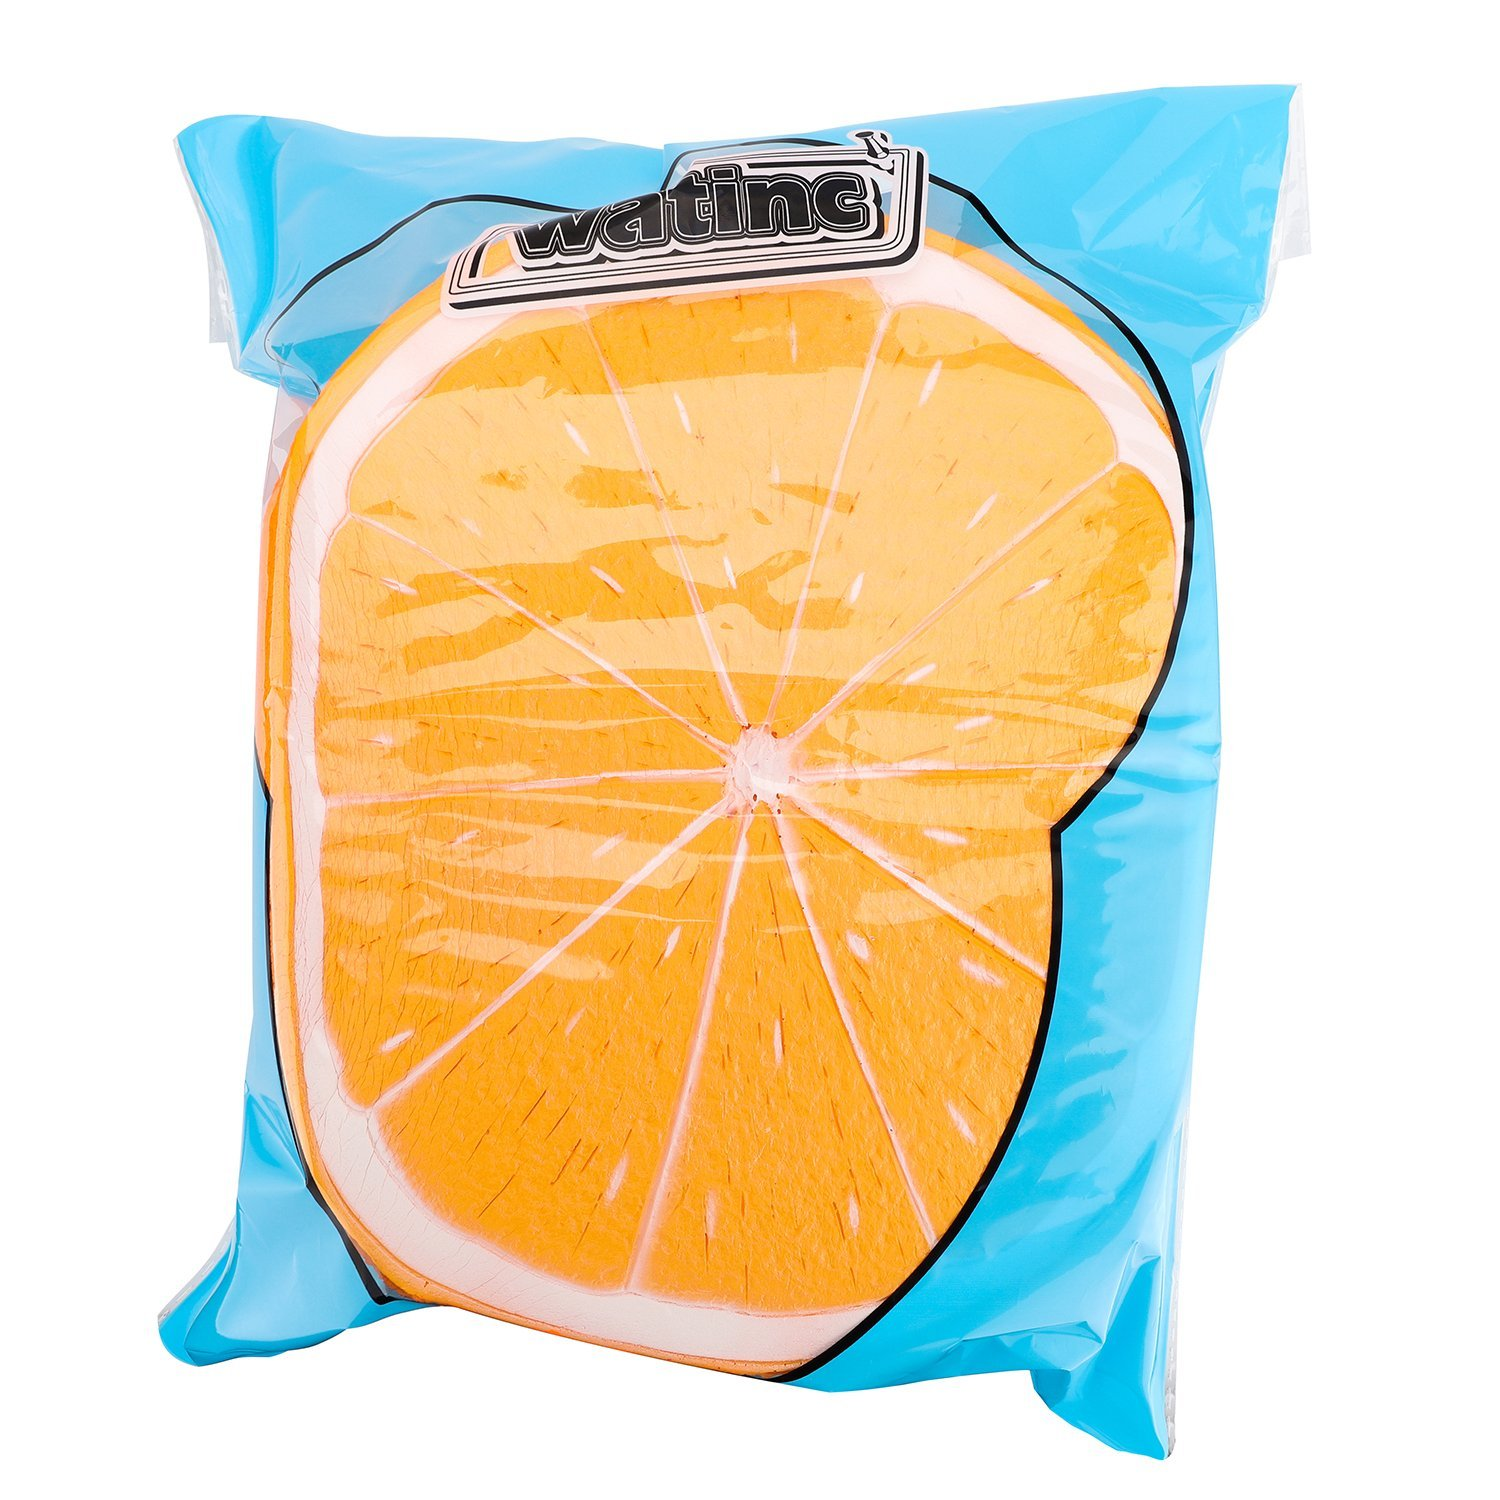 WATINC 10'' Super Jumbo Orange, Kawaii Cream Scented Slow Rising Squishy for Kid Toy, Lovely Toy,Stress Relief Toy,Decorations Toy Gift Fun